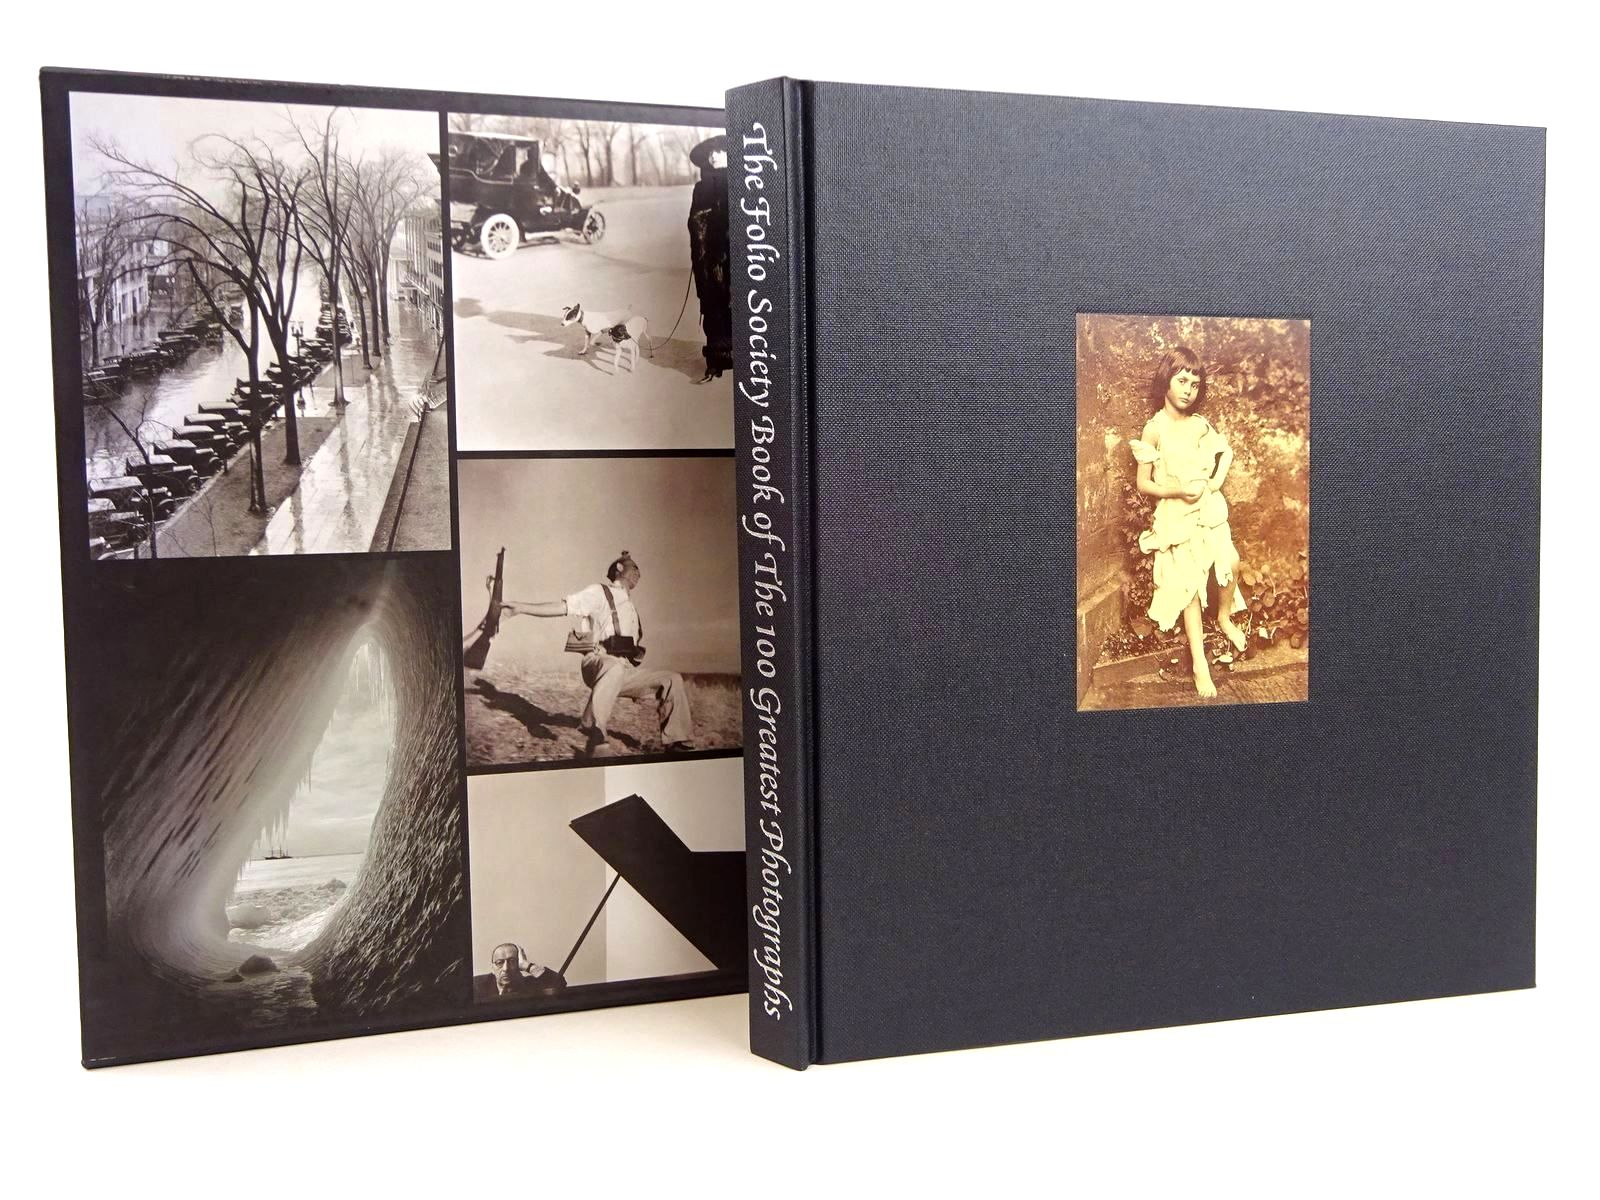 Photo of THE FOLIO SOCIETY BOOK OF THE 100 GREATEST PHOTOGRAPHS written by Haworth-Booth, Mark published by Folio Society (STOCK CODE: 1318309)  for sale by Stella & Rose's Books